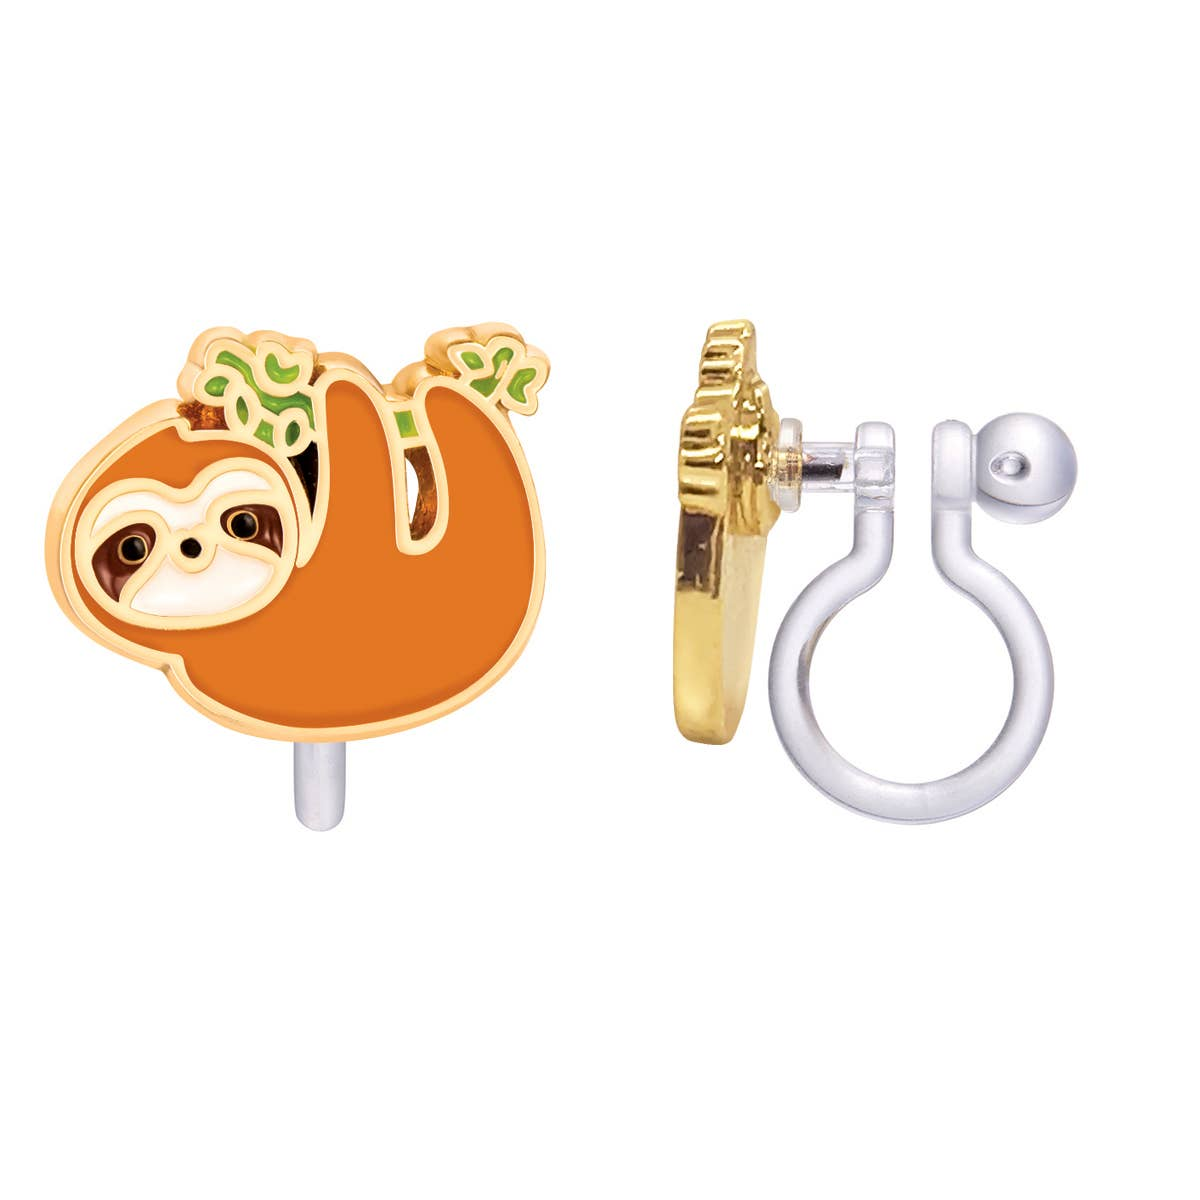 CLIP ON Cutie Earrings- Playful Sloth | Trada Marketplace